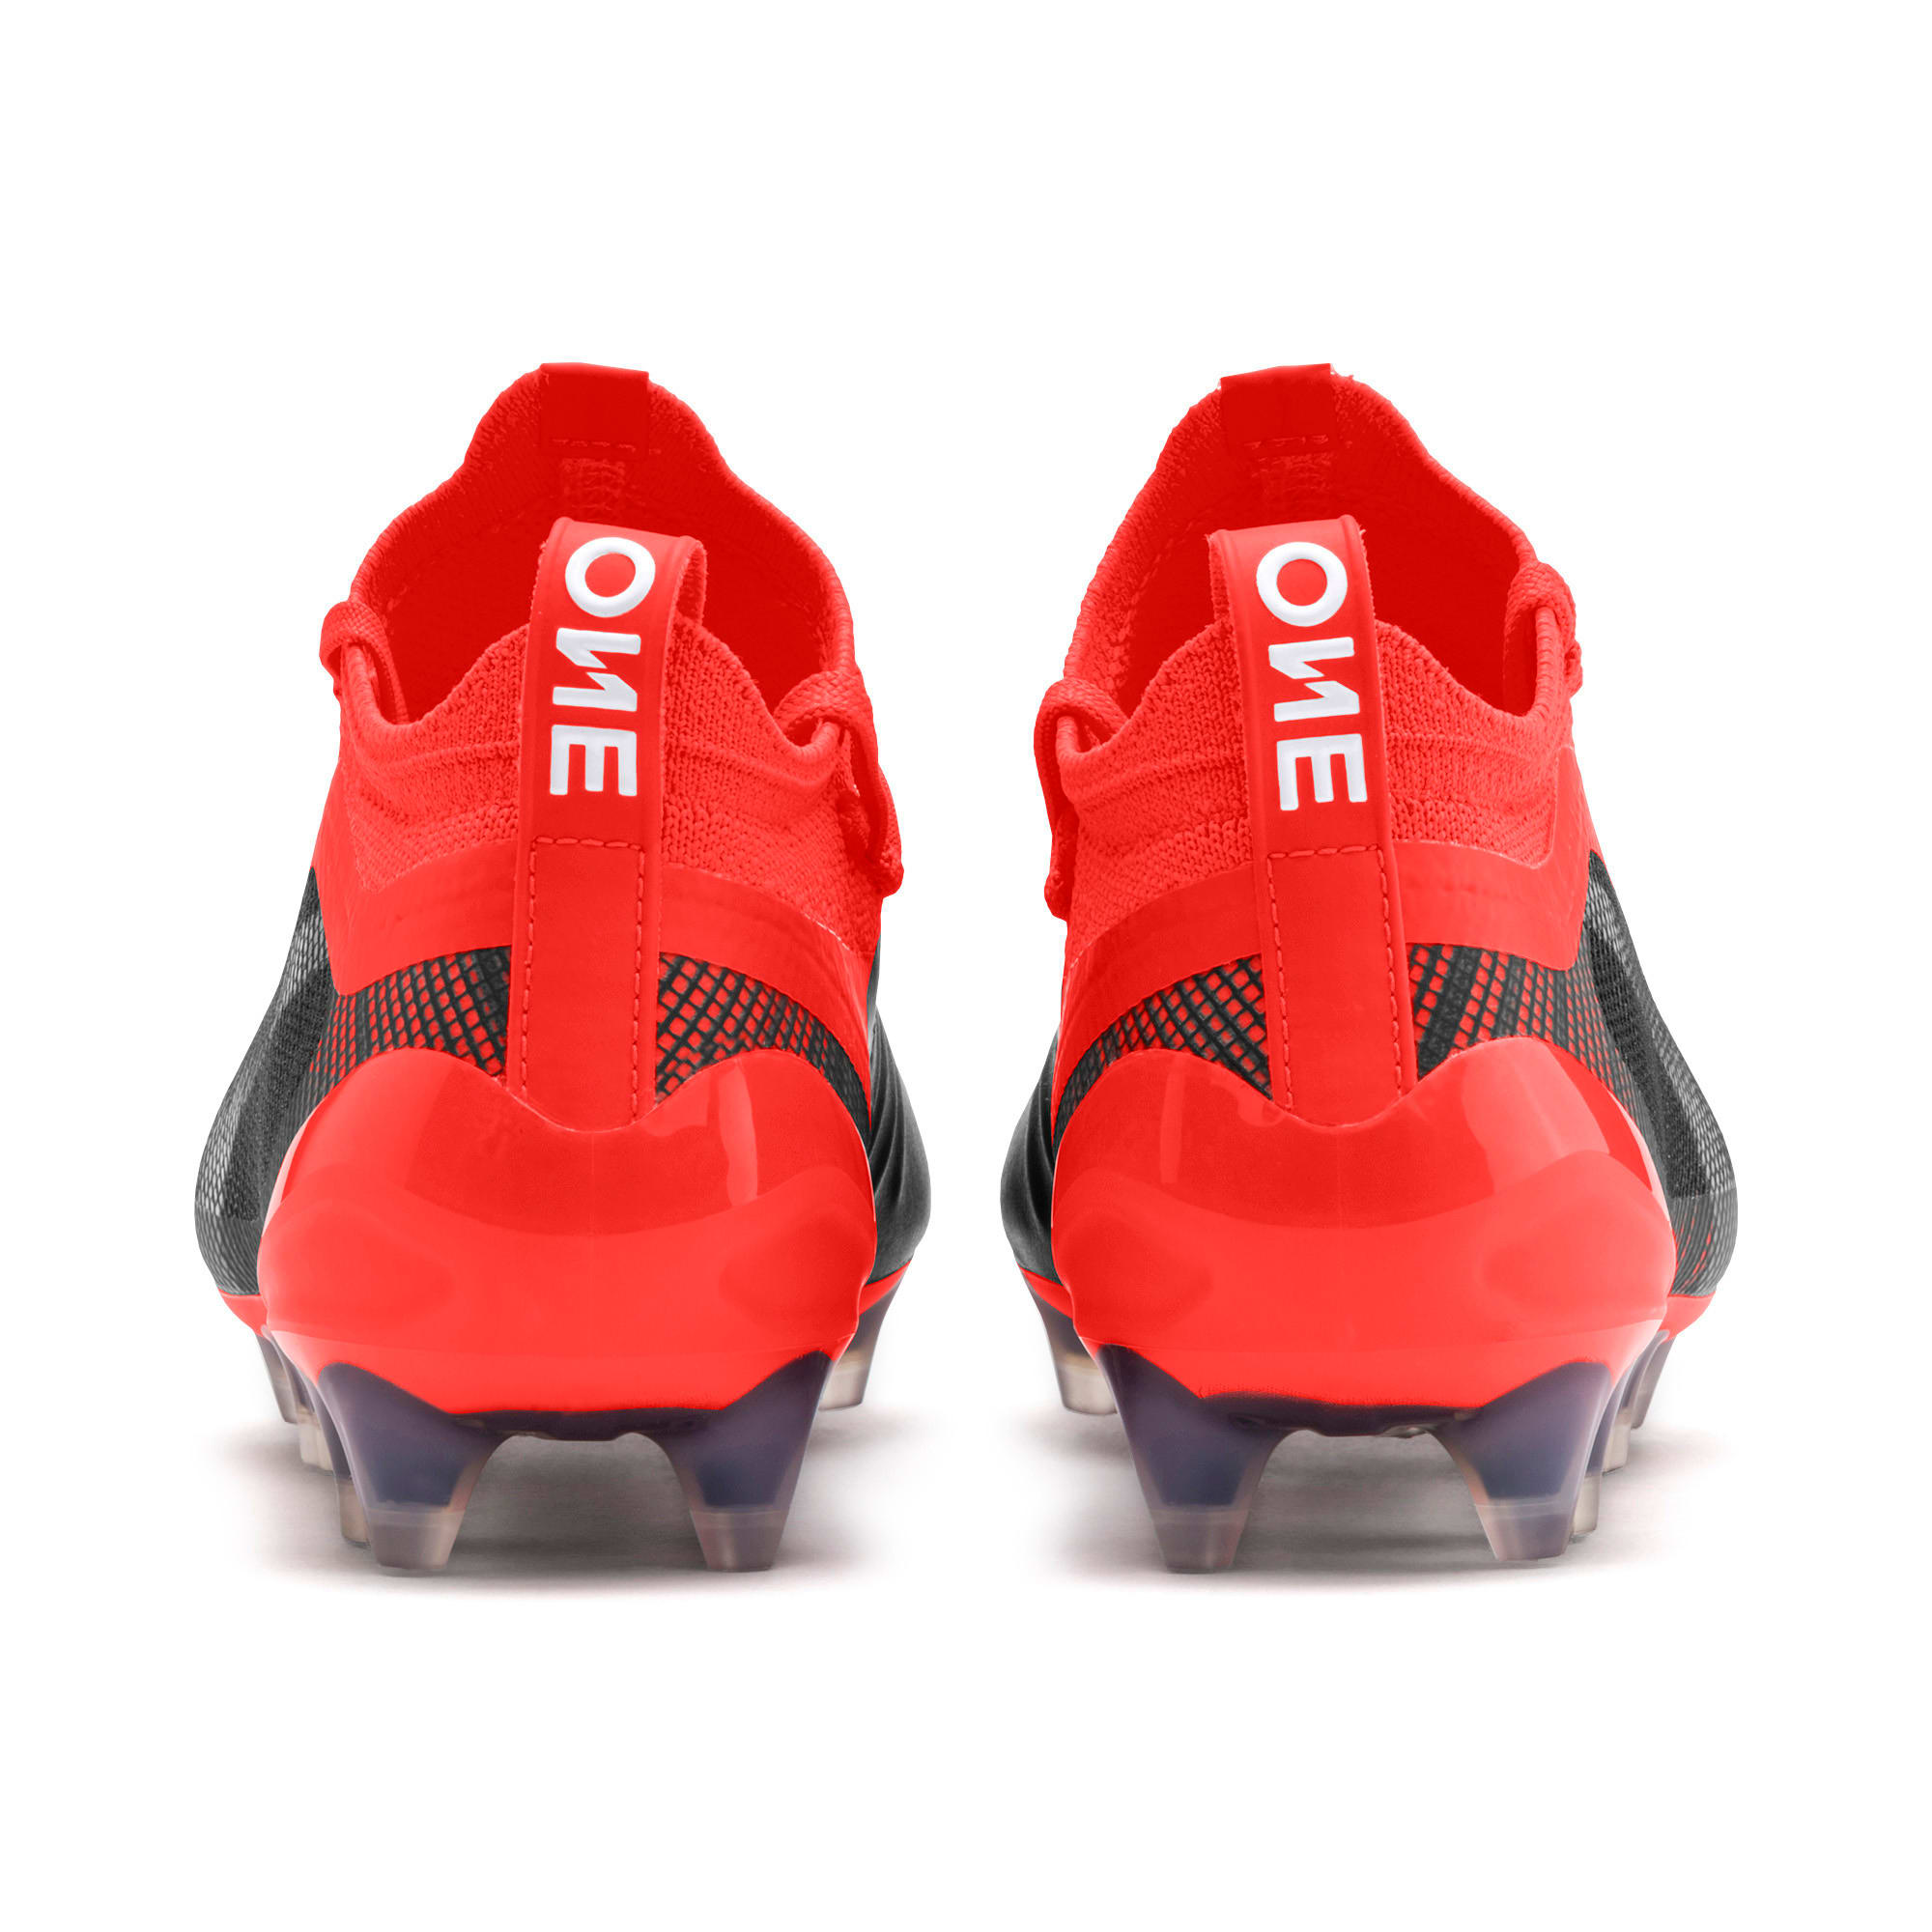 Thumbnail 3 of PUMA ONE 5.1 voetbalschoenen voor jeugd, Black-Nrgy Red-Aged Silver, medium